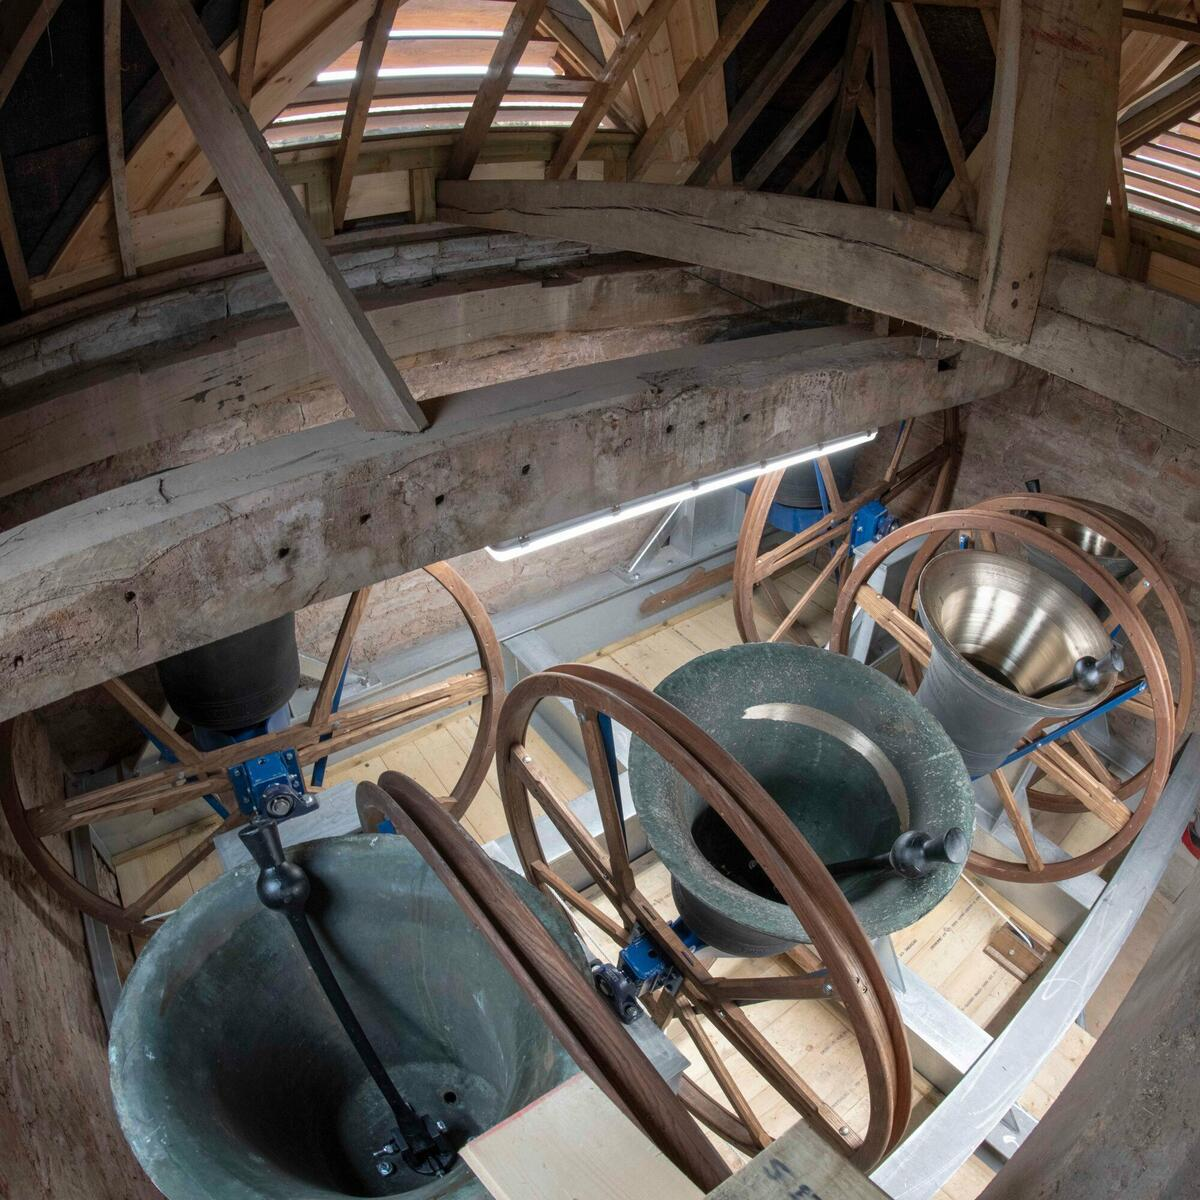 6 Bells - visiting ringers welcome